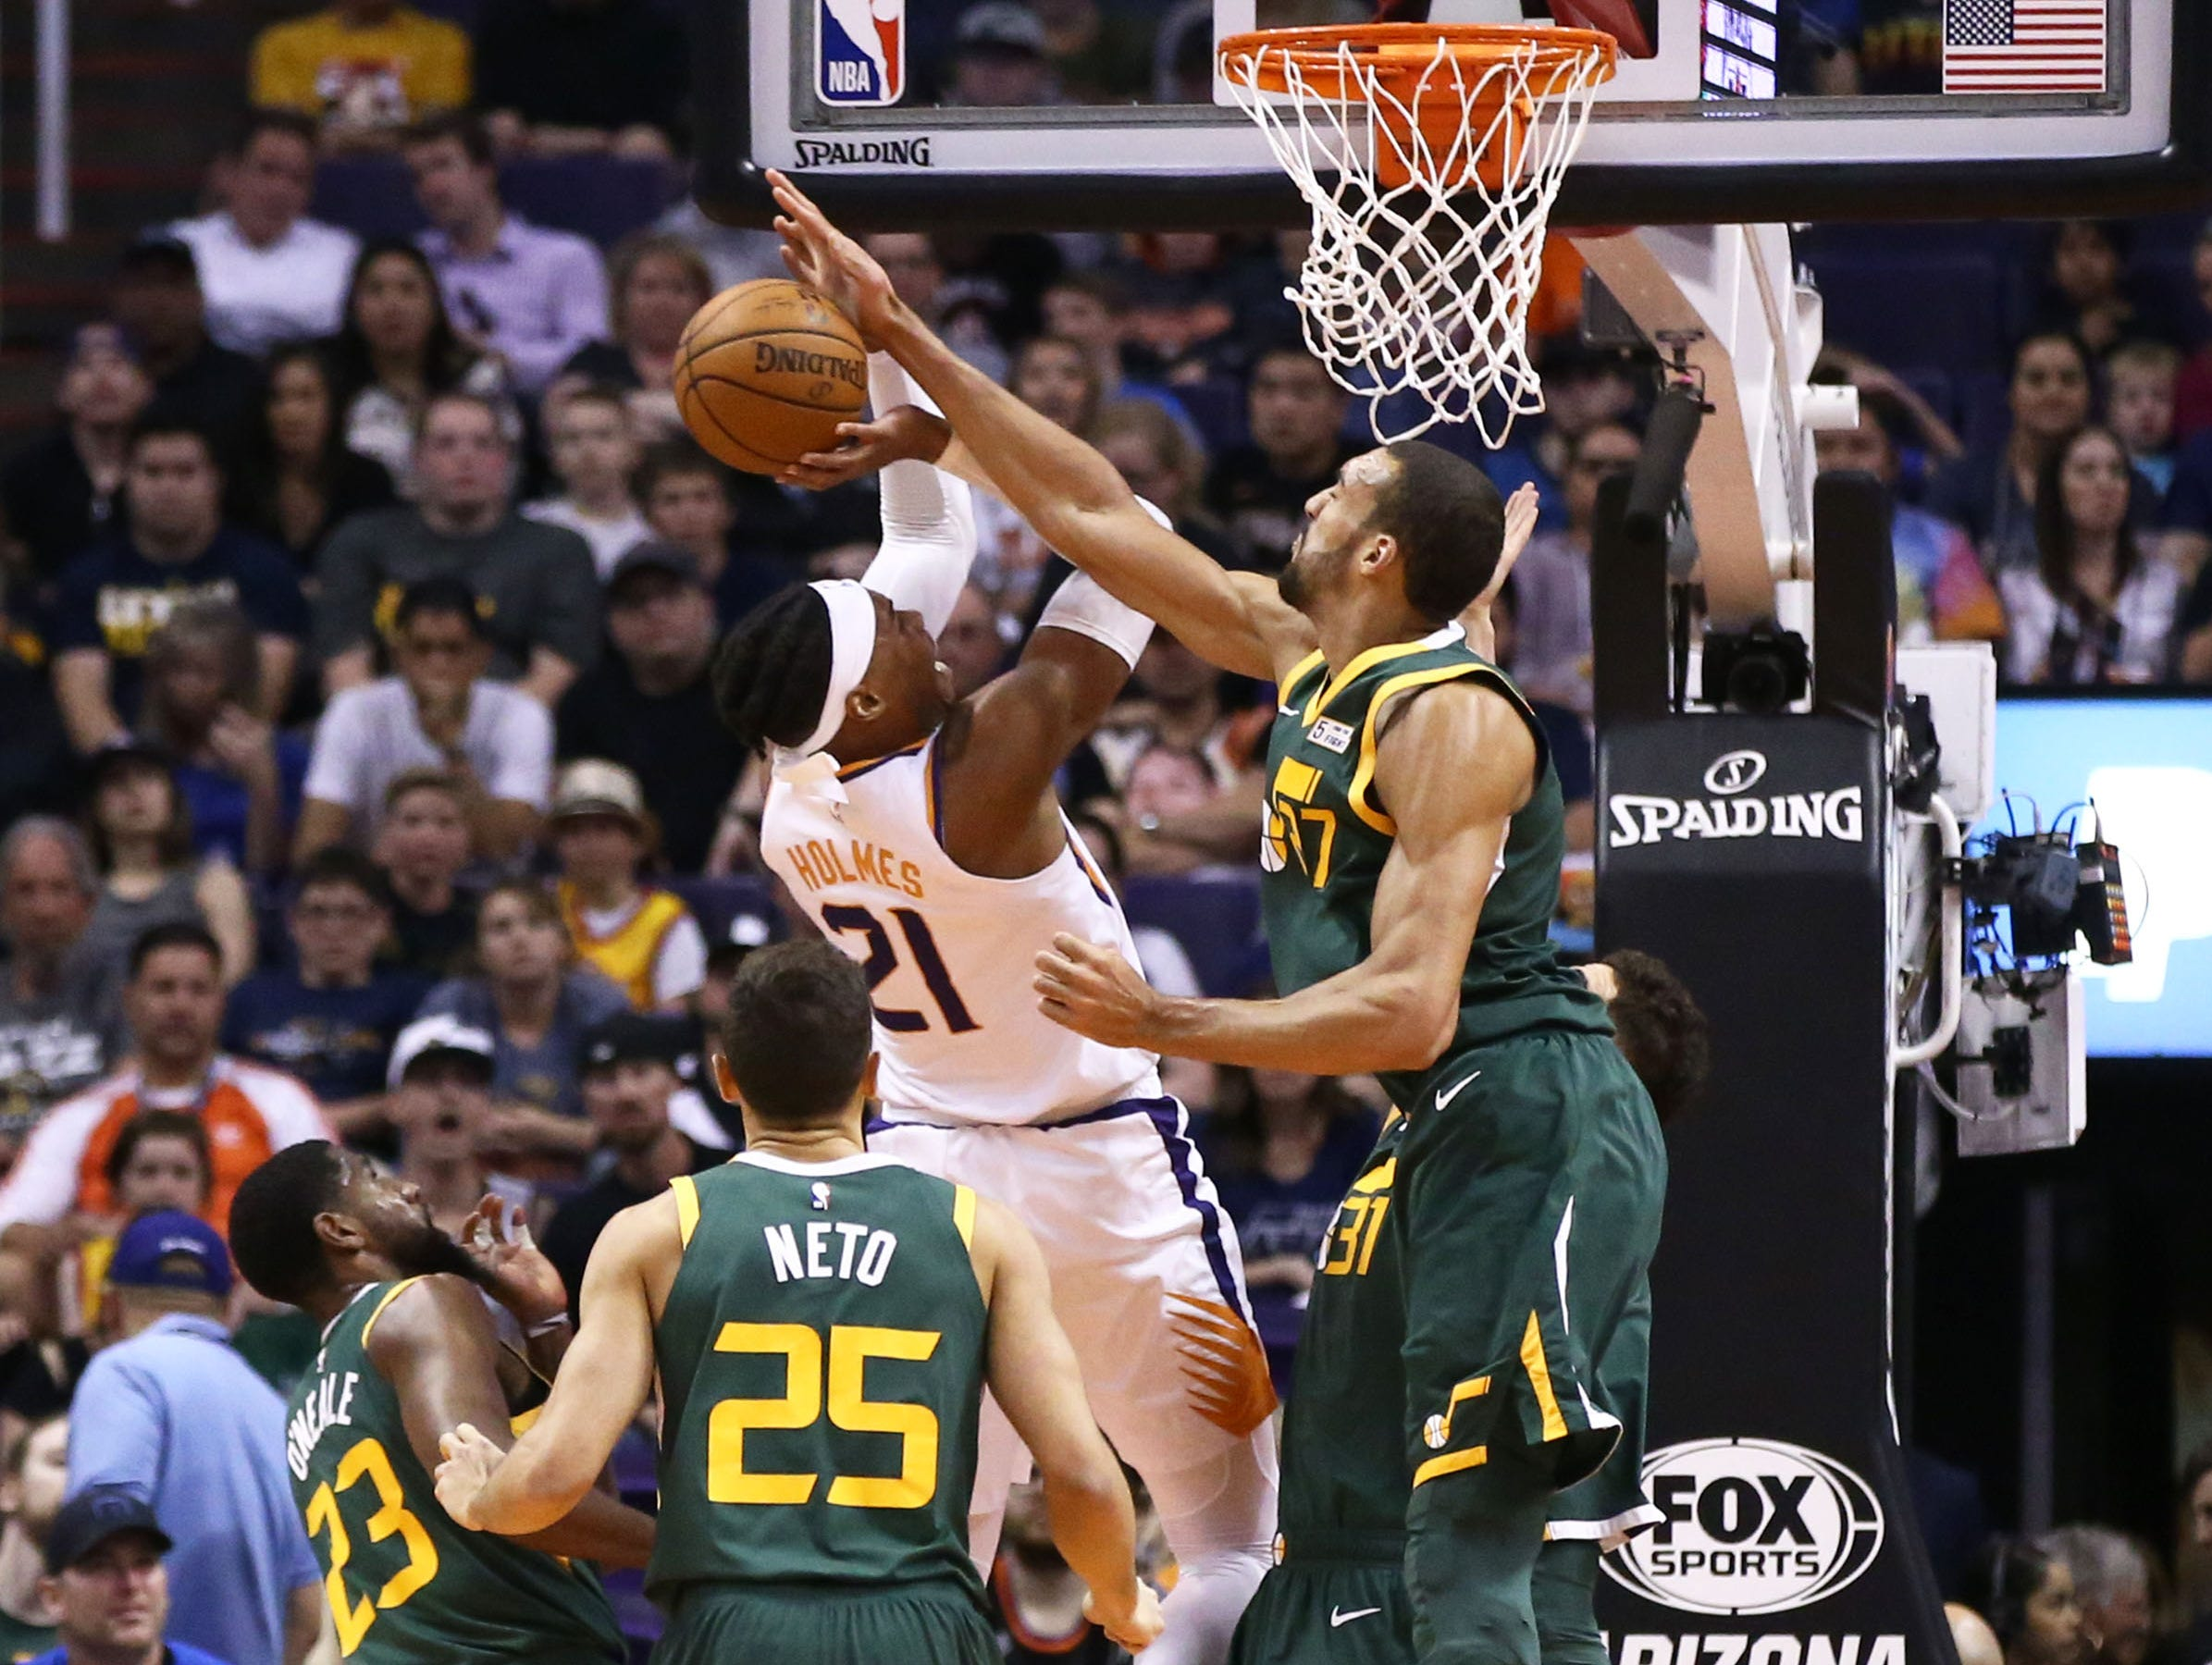 Utah Jazz center Rudy Gobert (27) blocks the shot by Phoenix Suns forward Richaun Holmes (21) in the first half on Apr. 3, 2019 at Talking Stick Resort Arena in Phoenix, Ariz.